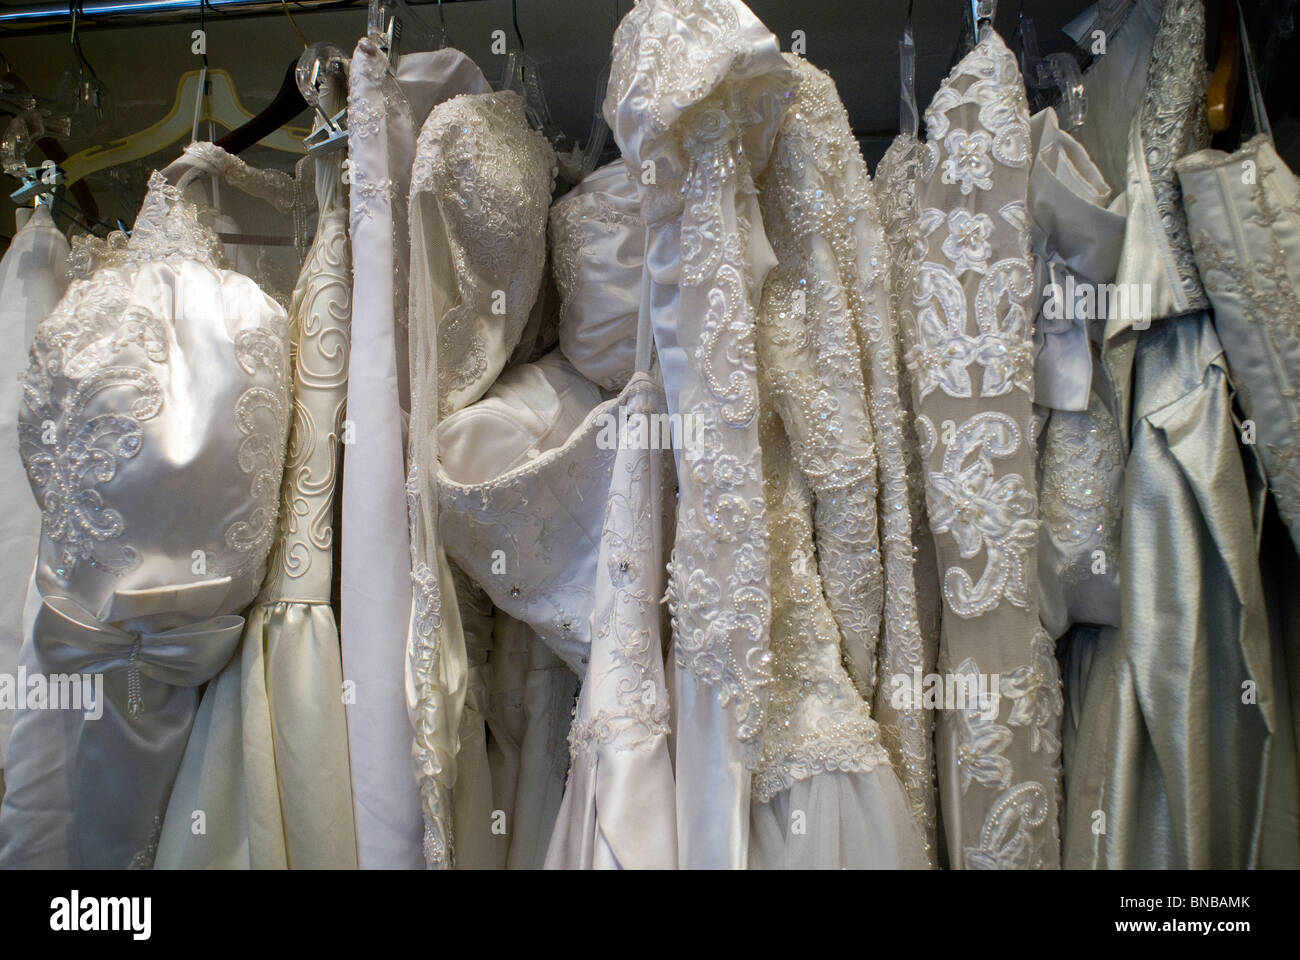 Previously owned wedding dresses awaiting brides are on display in a ...